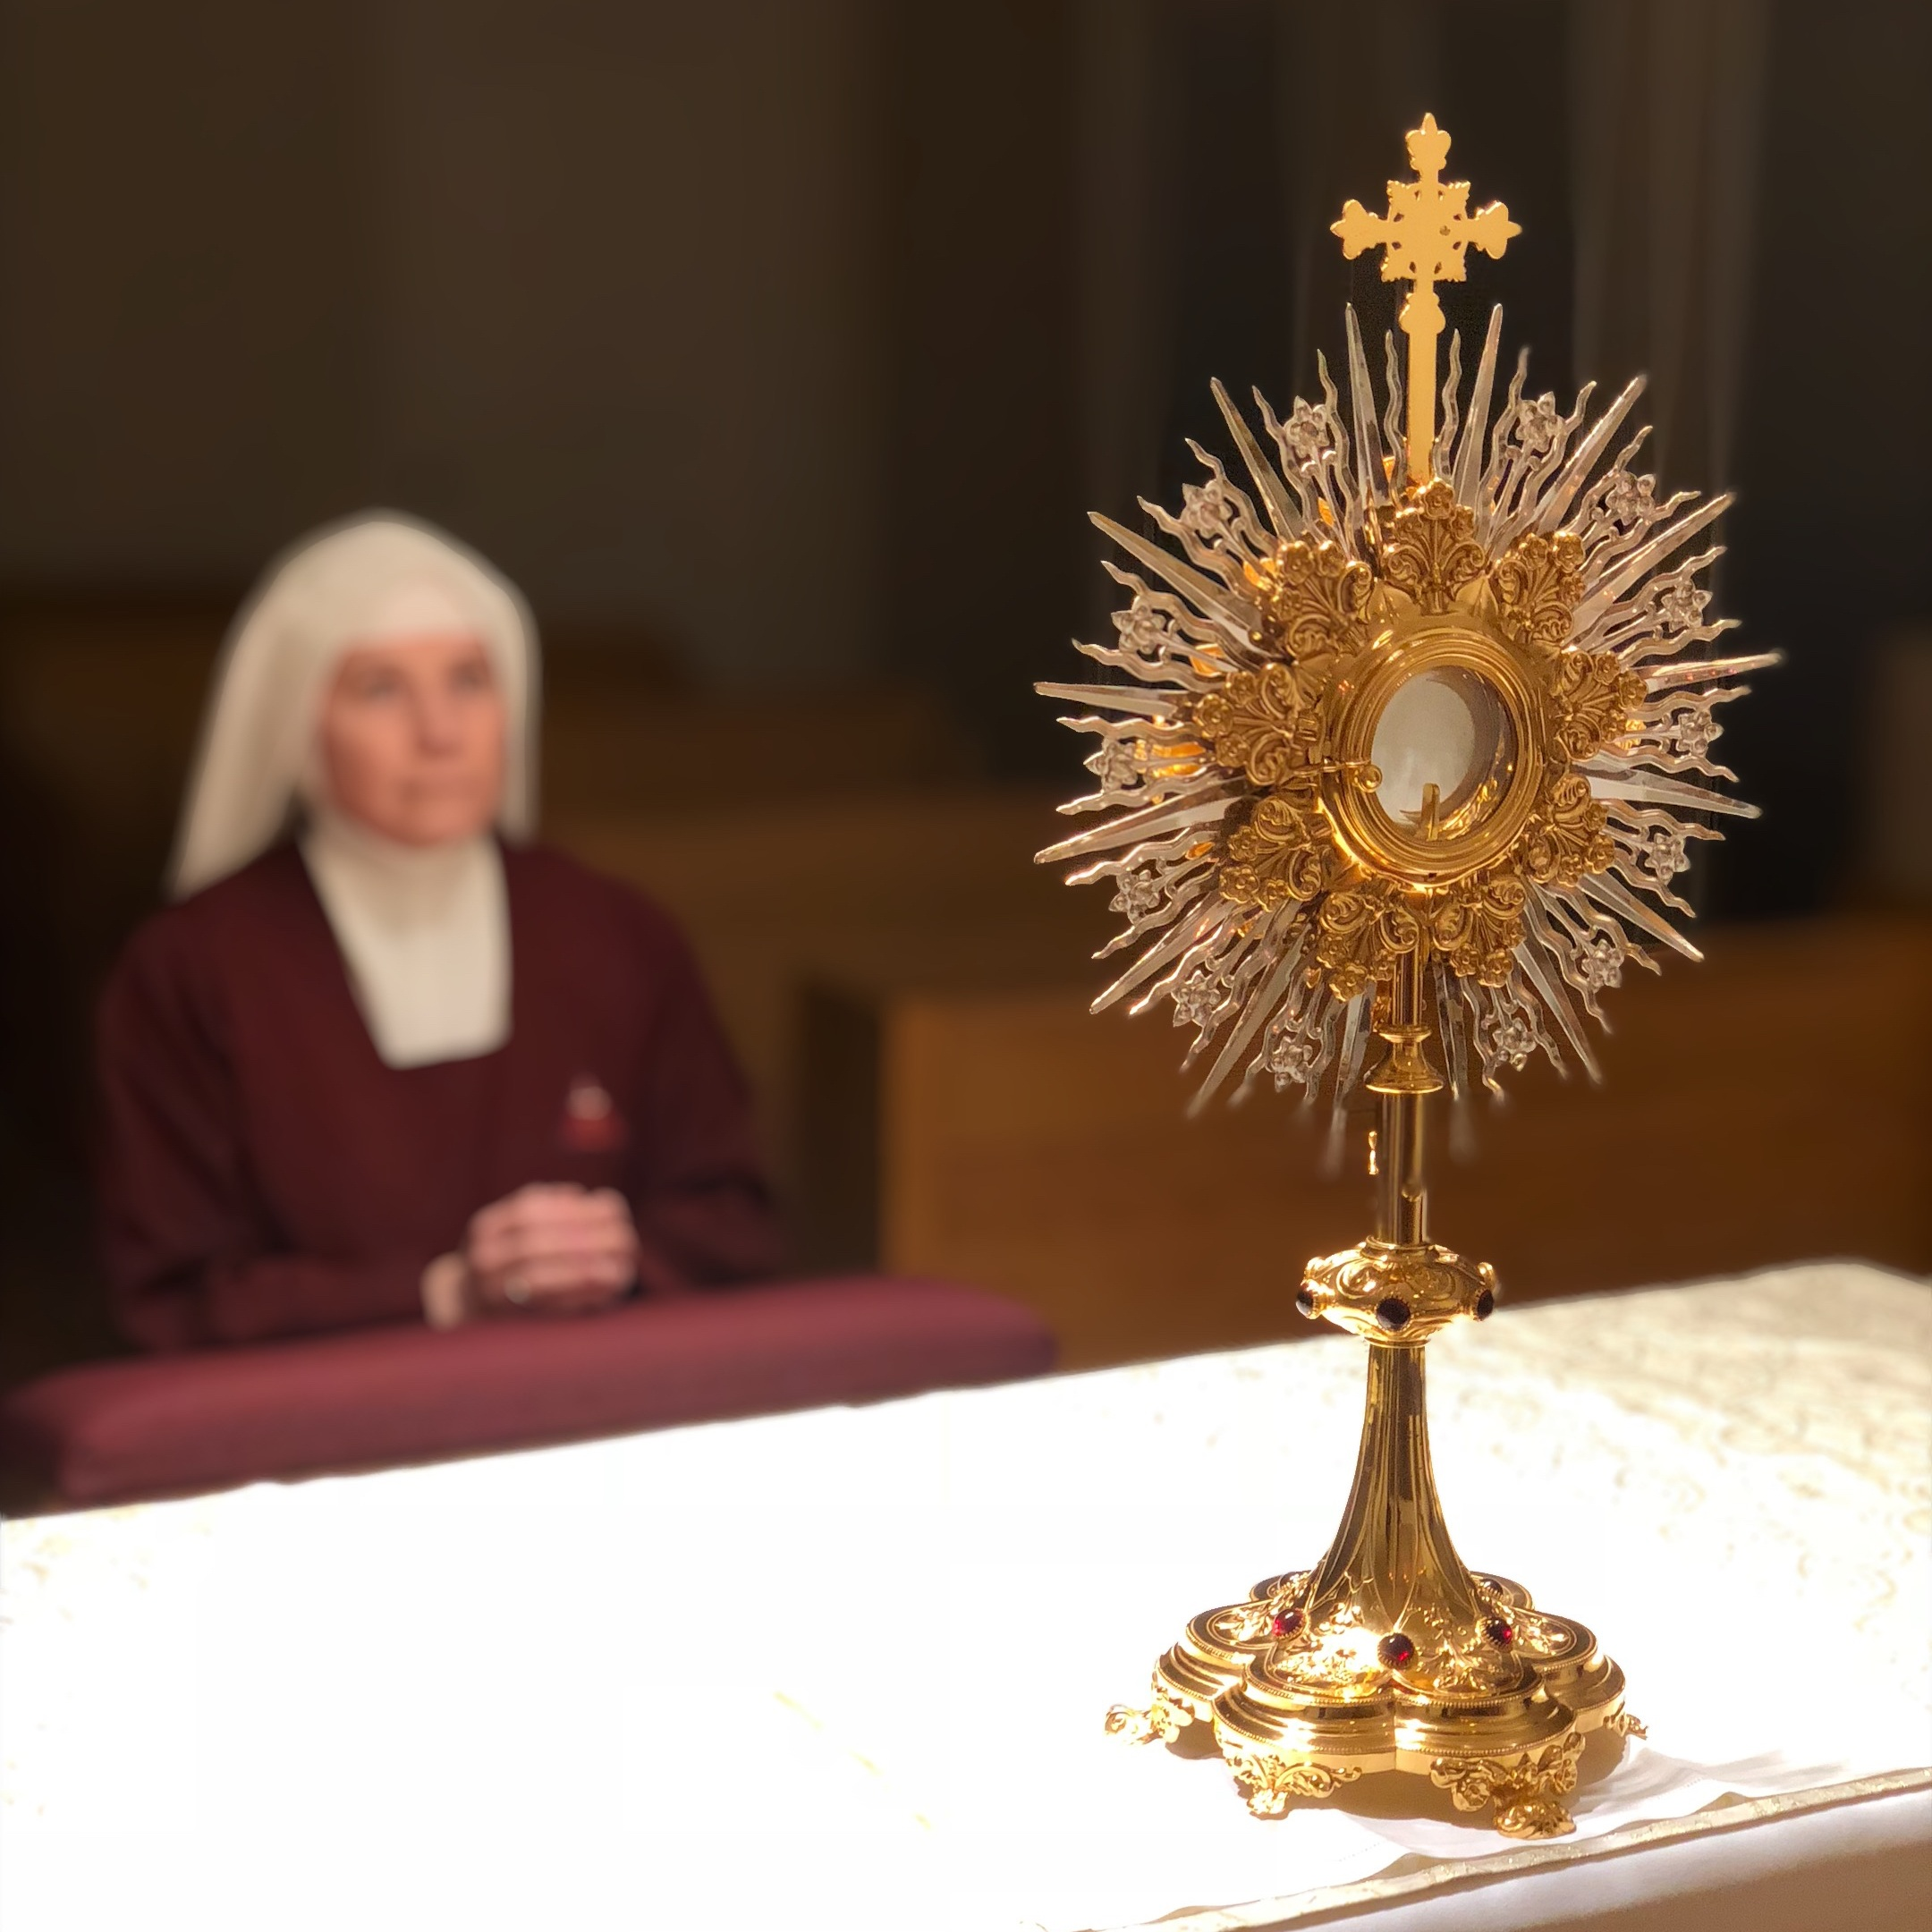 A Handmaid of the Precious Blood in nocturnal Adoration